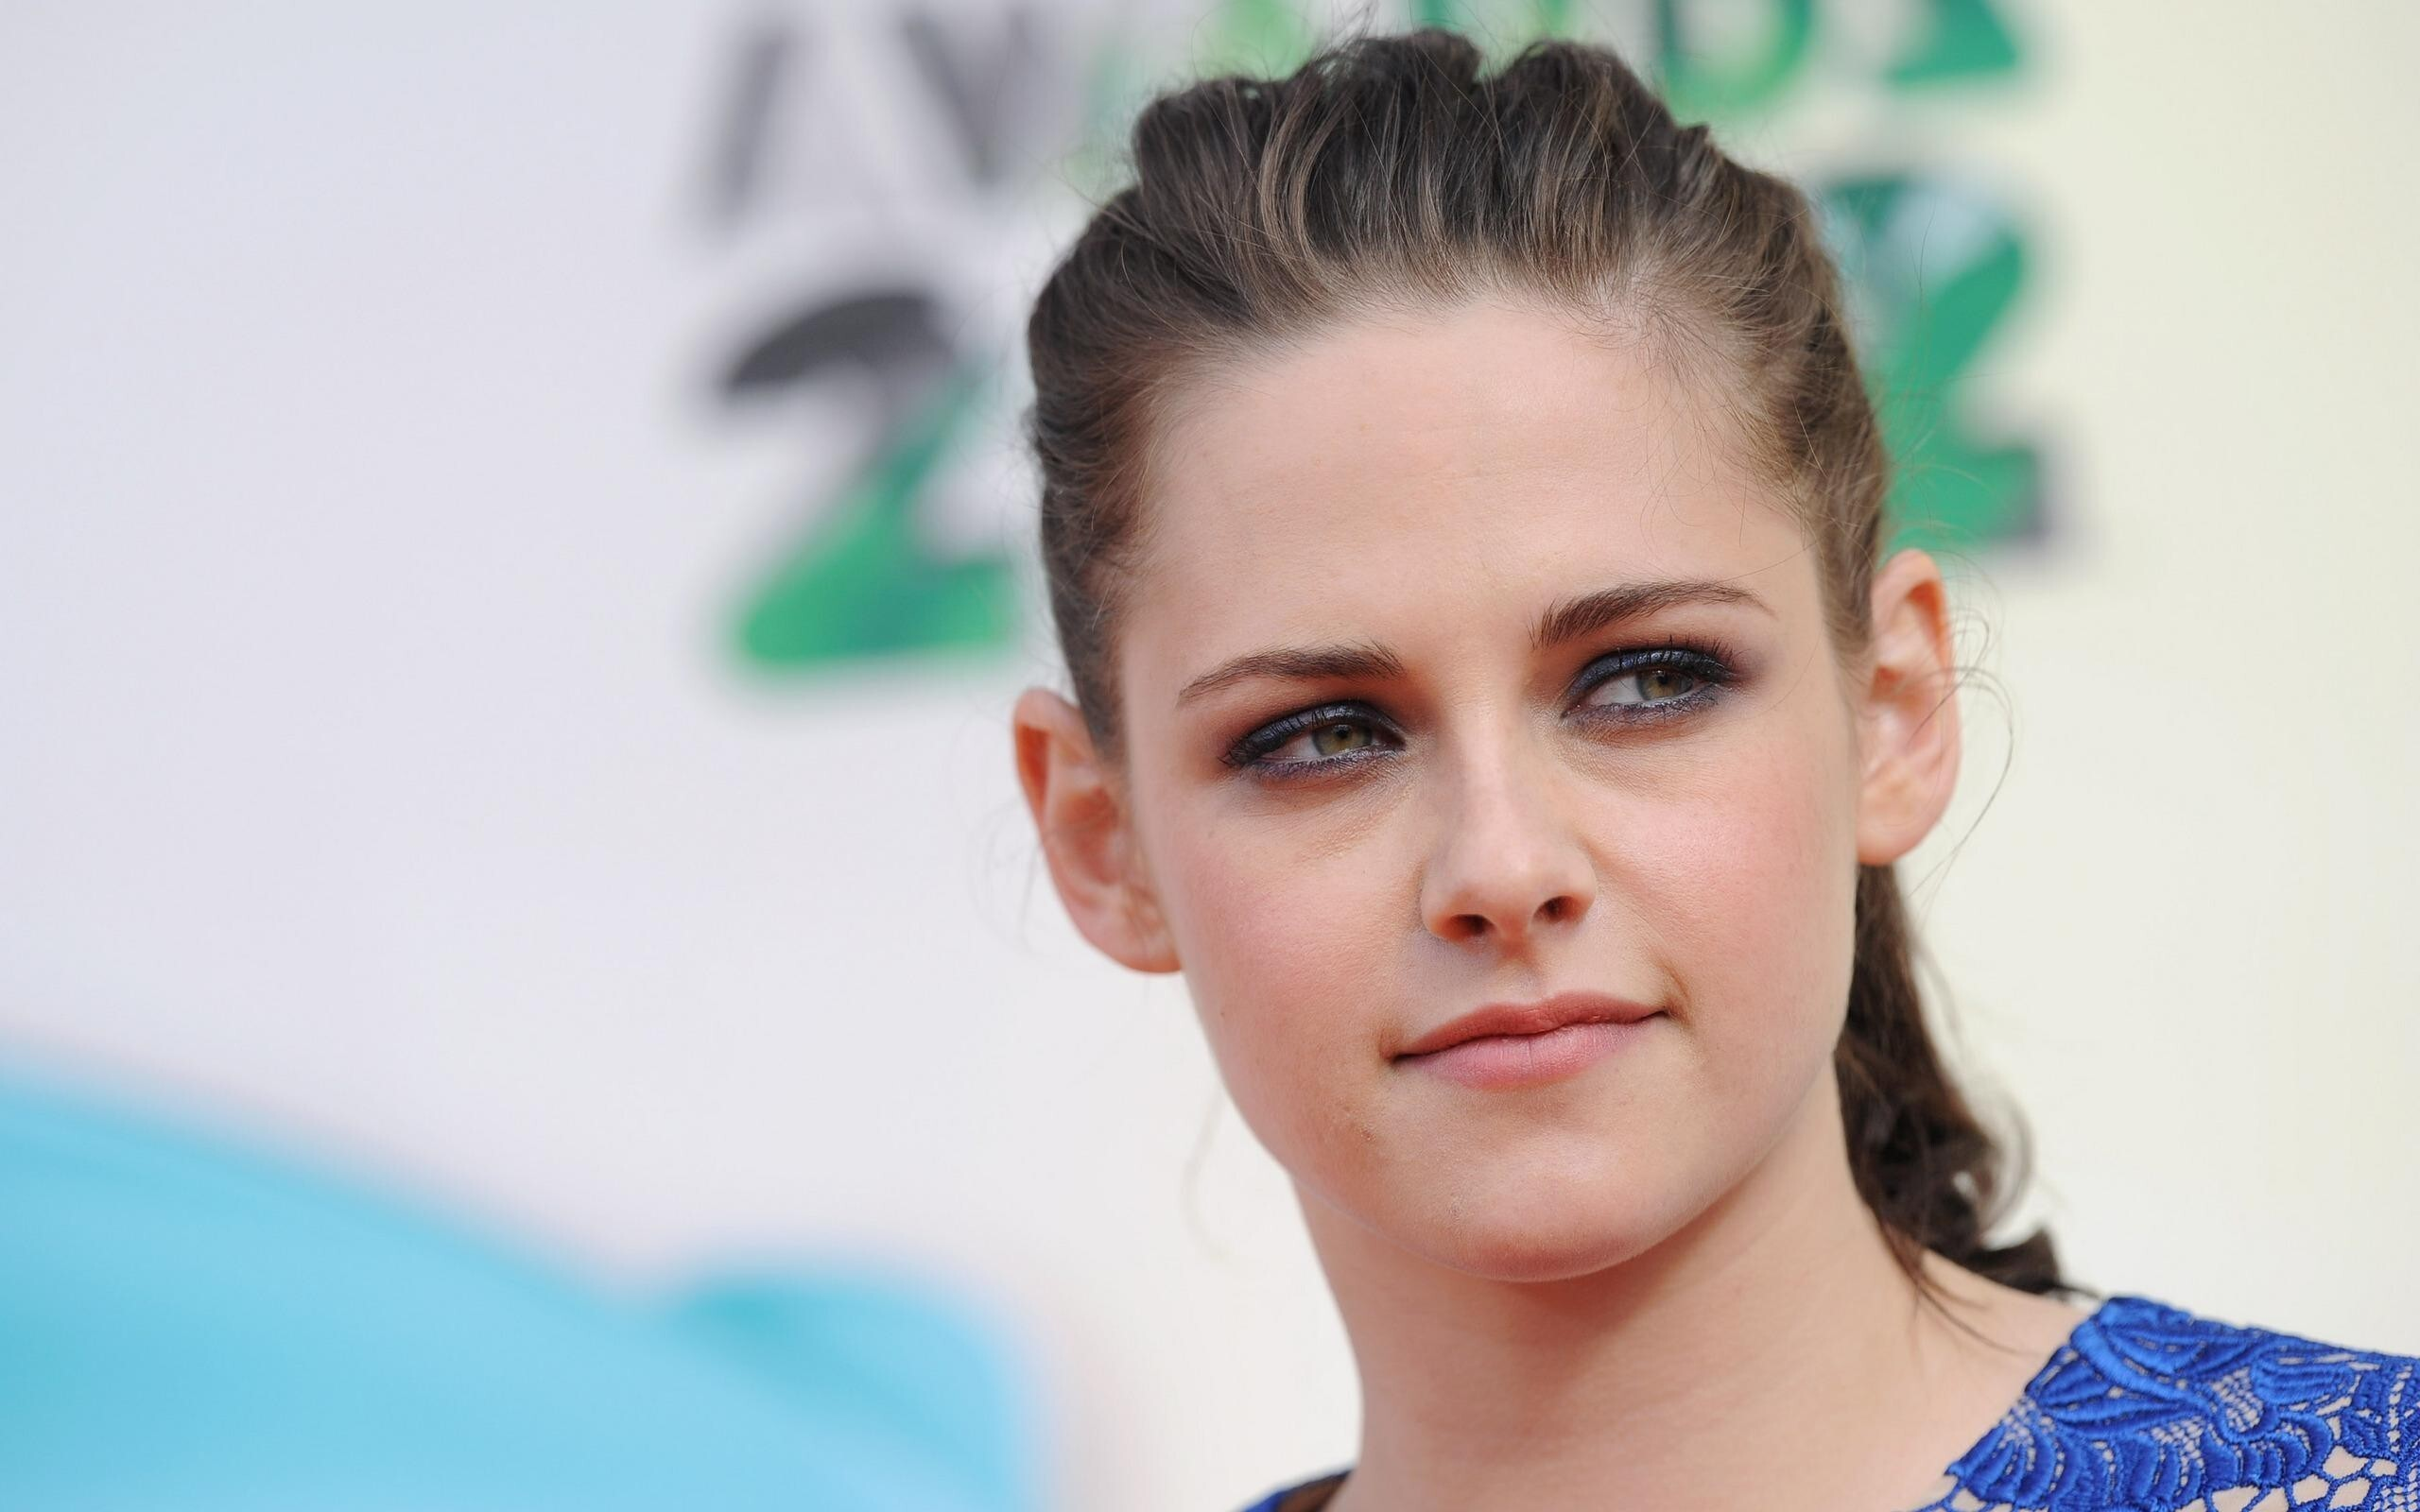 Beautiful american celebrity kristen stewart cute eye hd wallpaper beautiful american celebrity kristen stewart cute eye hd wallpaper hd wallpapers voltagebd